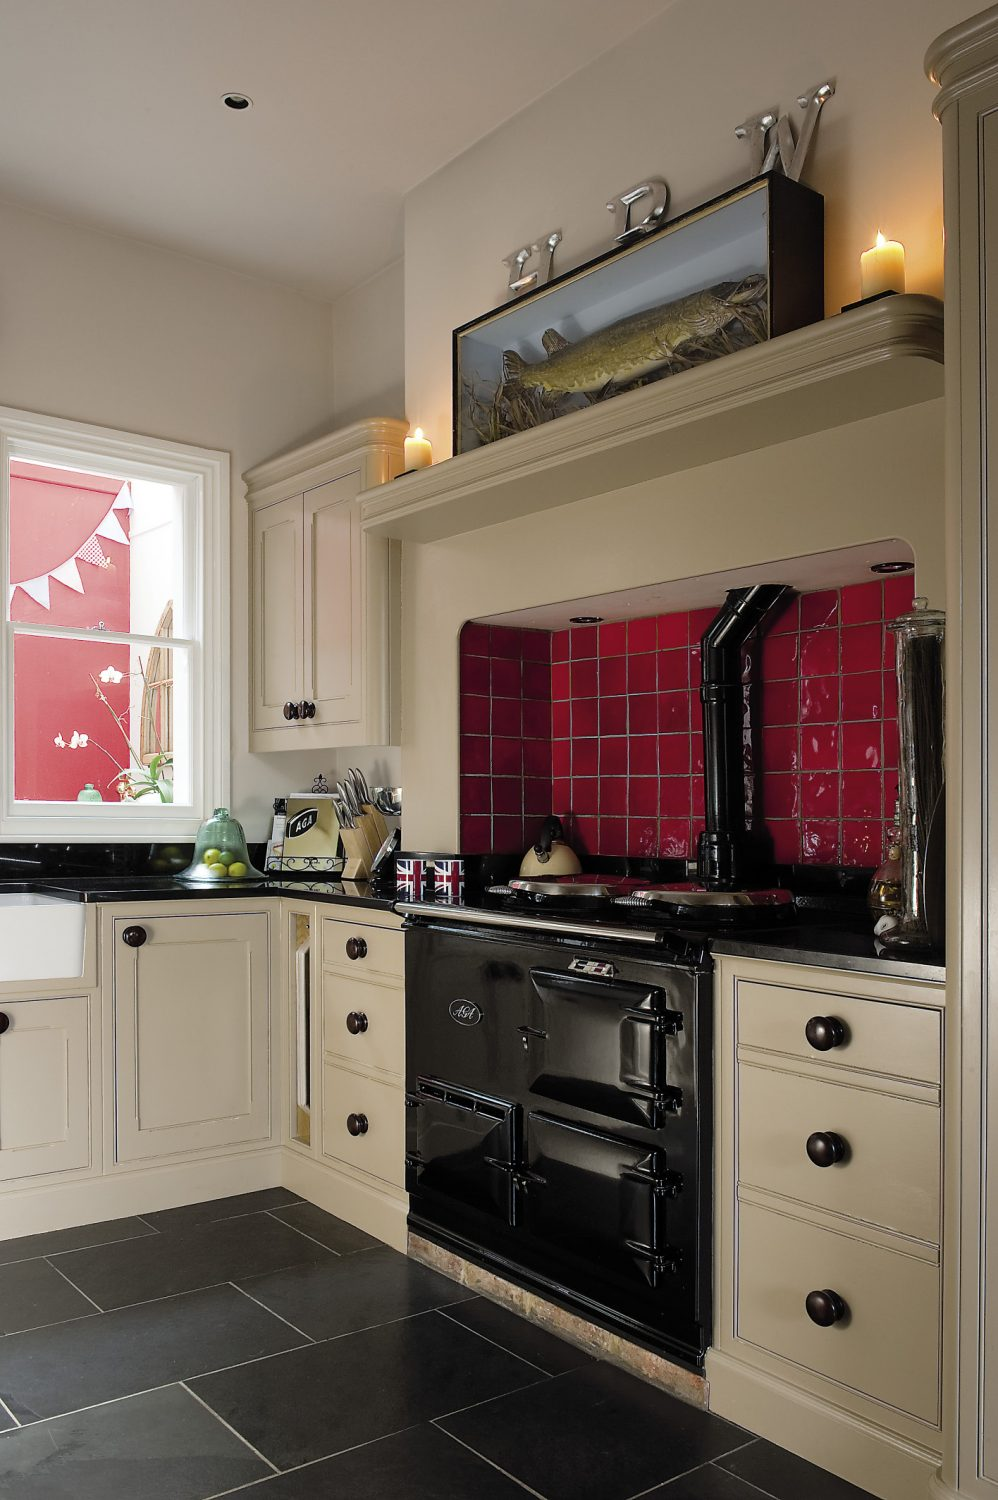 """A shiny black Aga warms the room and behind it, the alcove has been covered with scarlet tiles. Sally loves to cook so it's also a very practical and efficient space: """"The Aga was non-negotiable,"""" she says flatly. """"I've always cooked with one."""""""